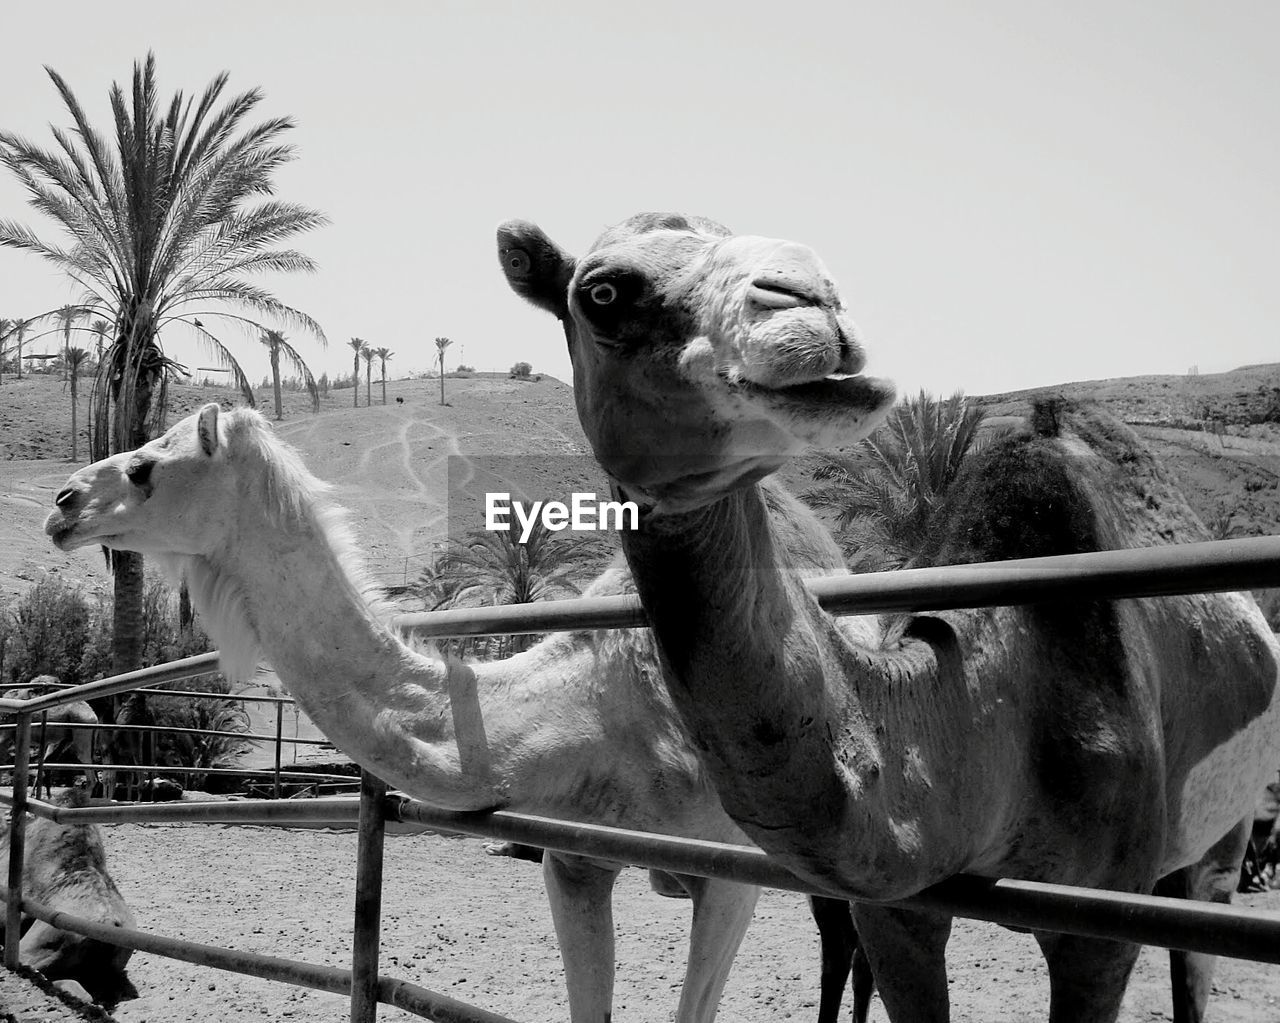 Camels standing by fence in arid landscape against sky on sunny day